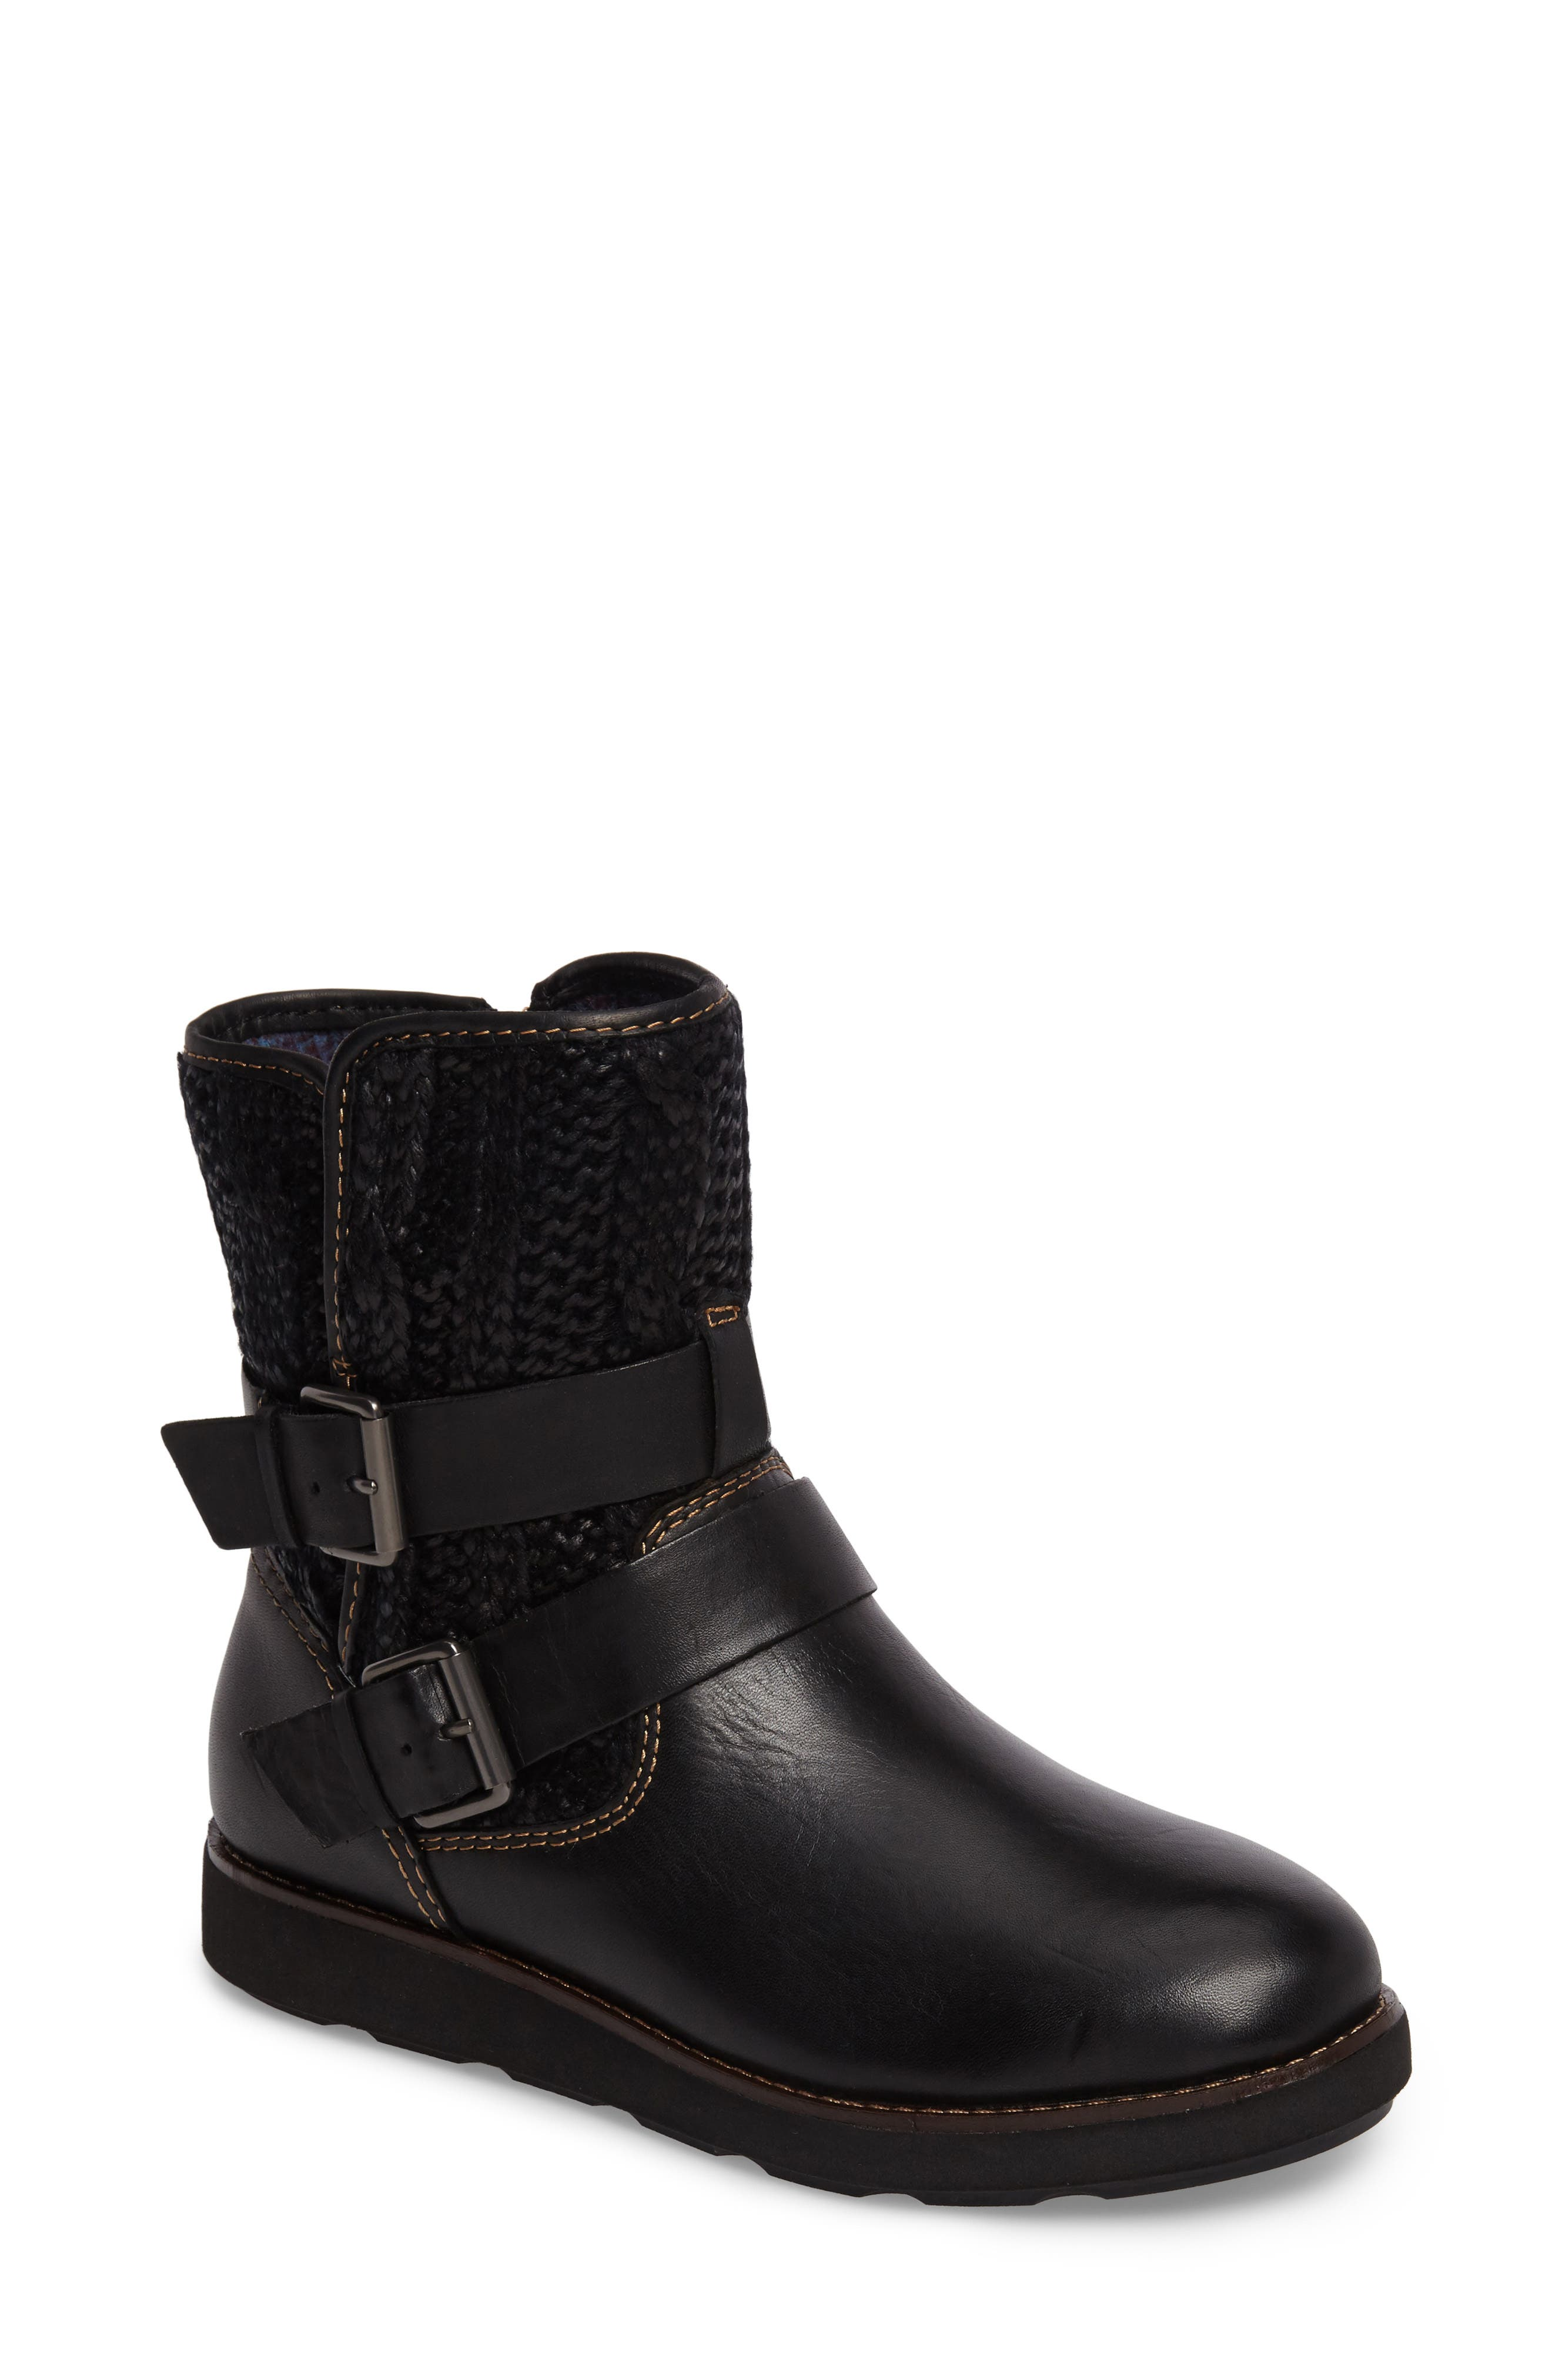 bionica Nordic Boot (Women)